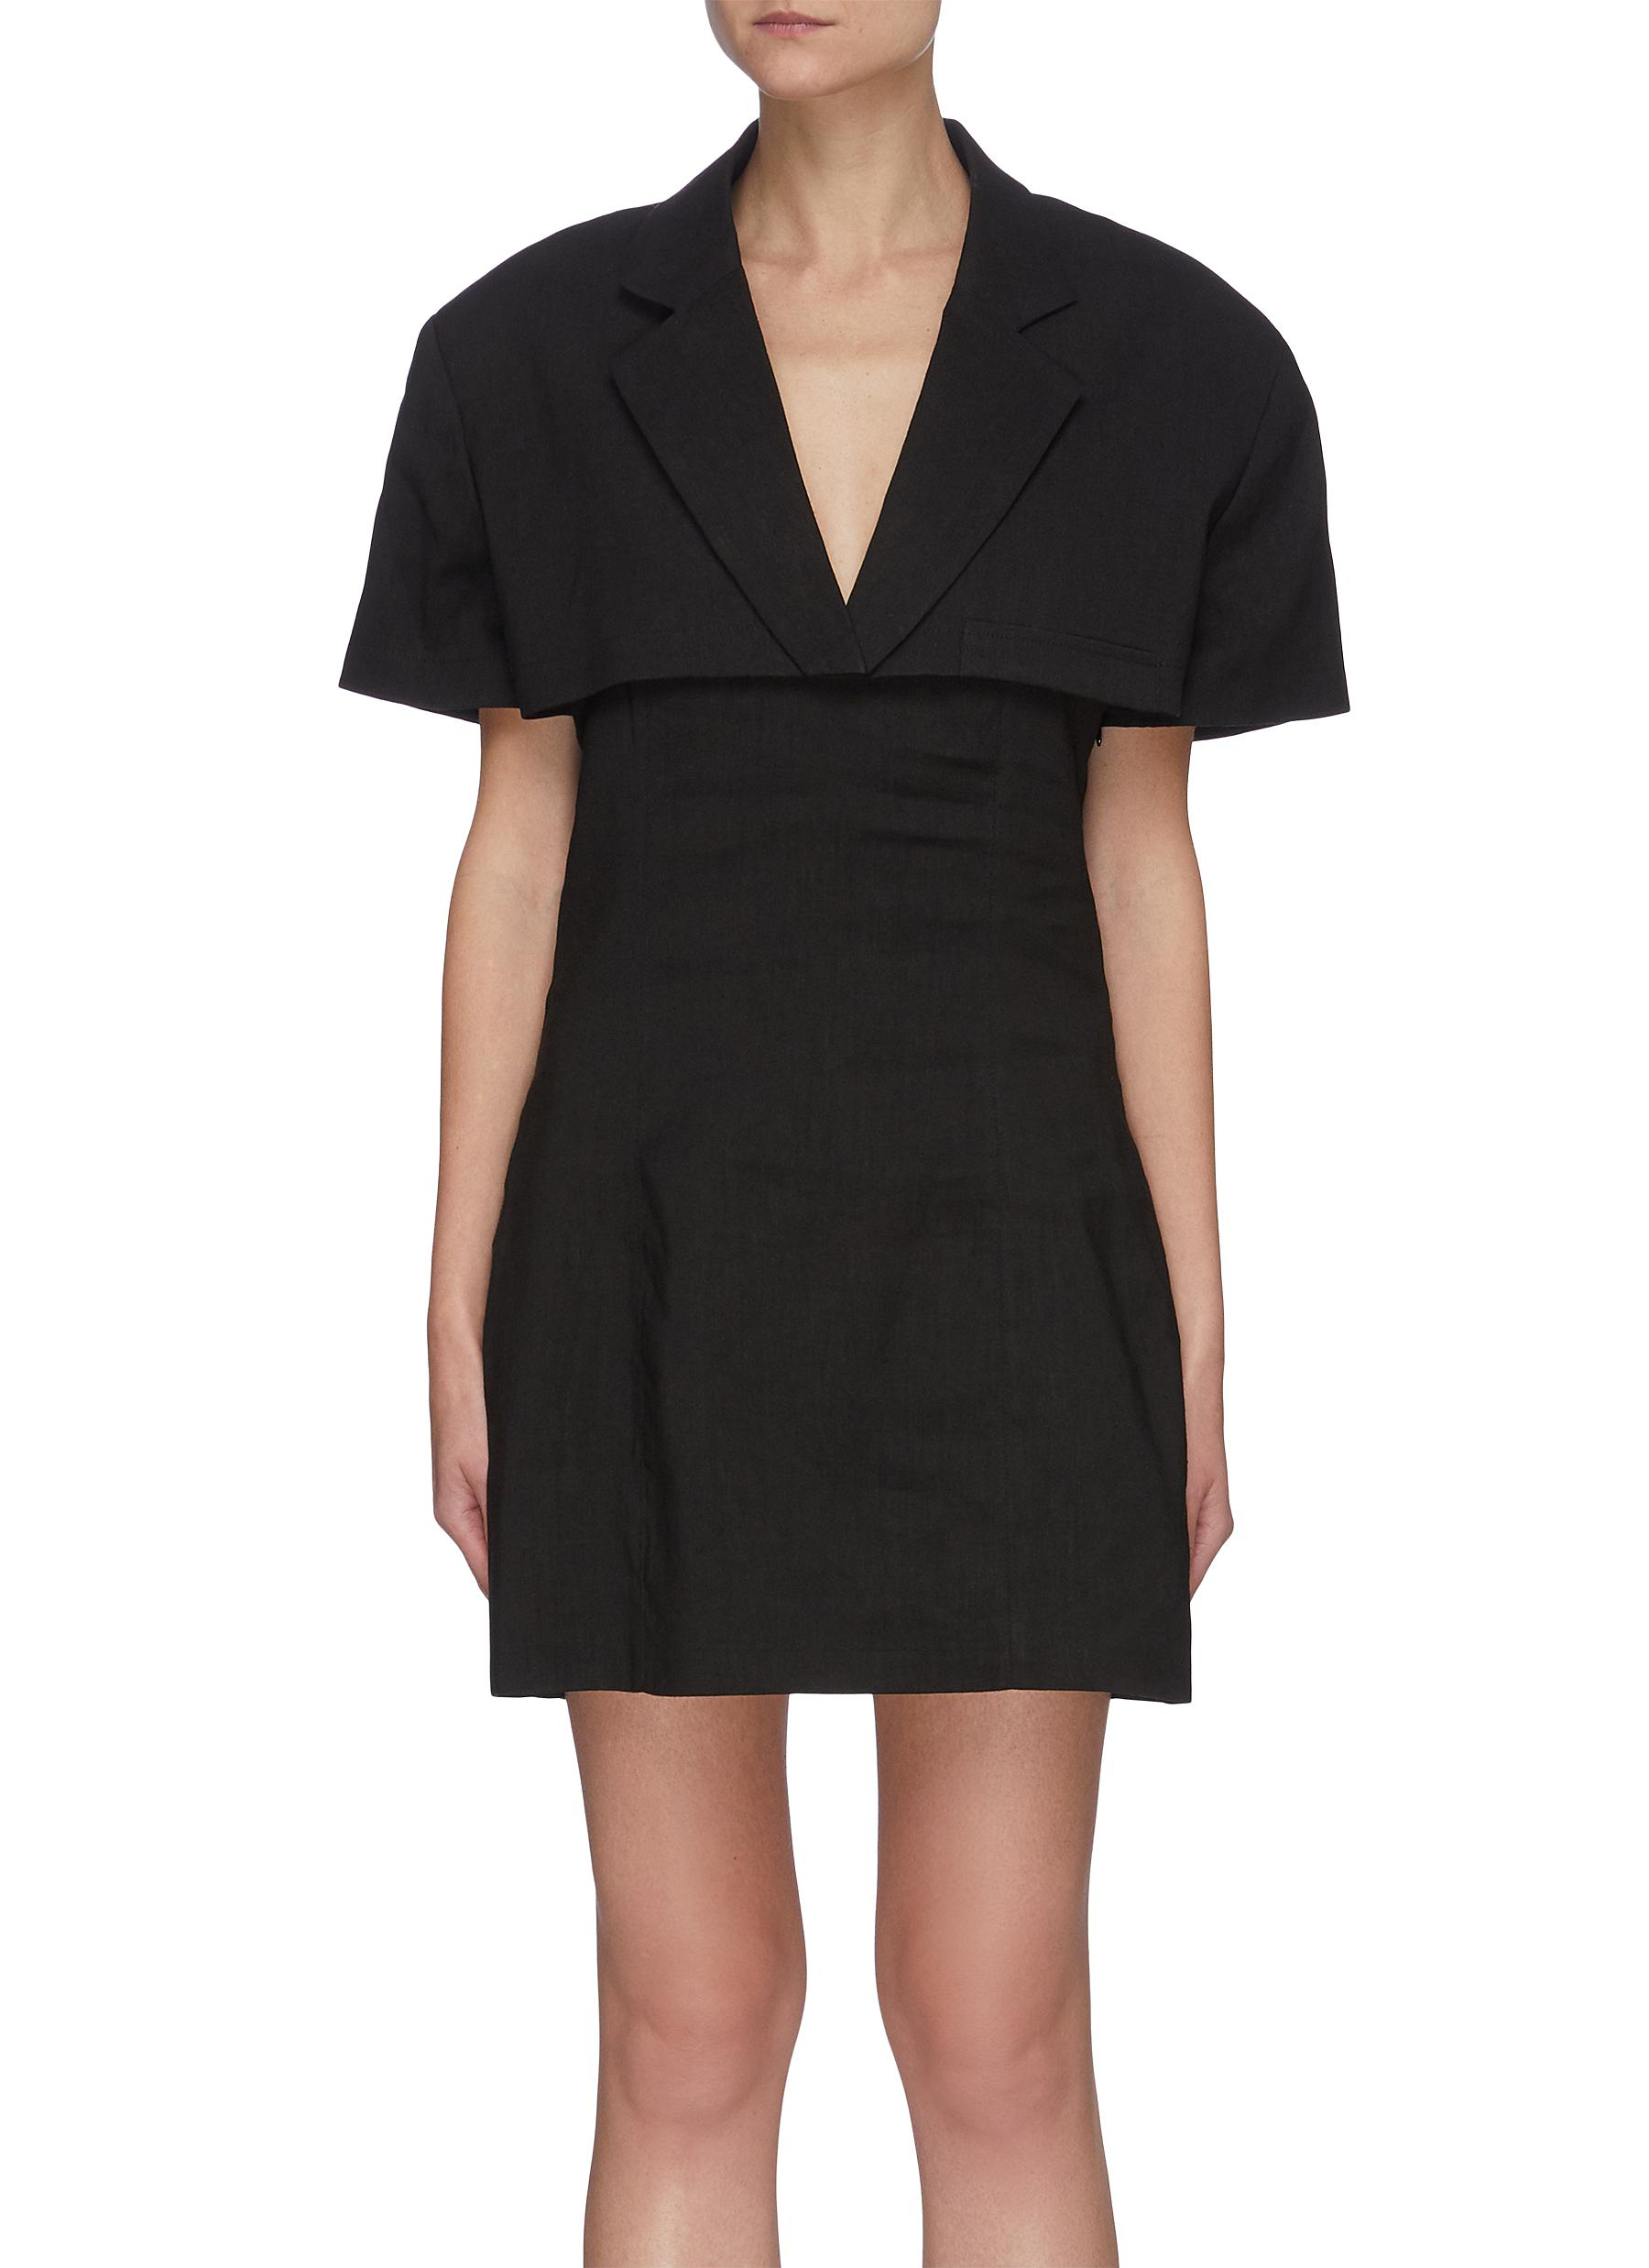 Jacquemus 'LA ROBE GARDIAN' LAYERED JACKET DRESS